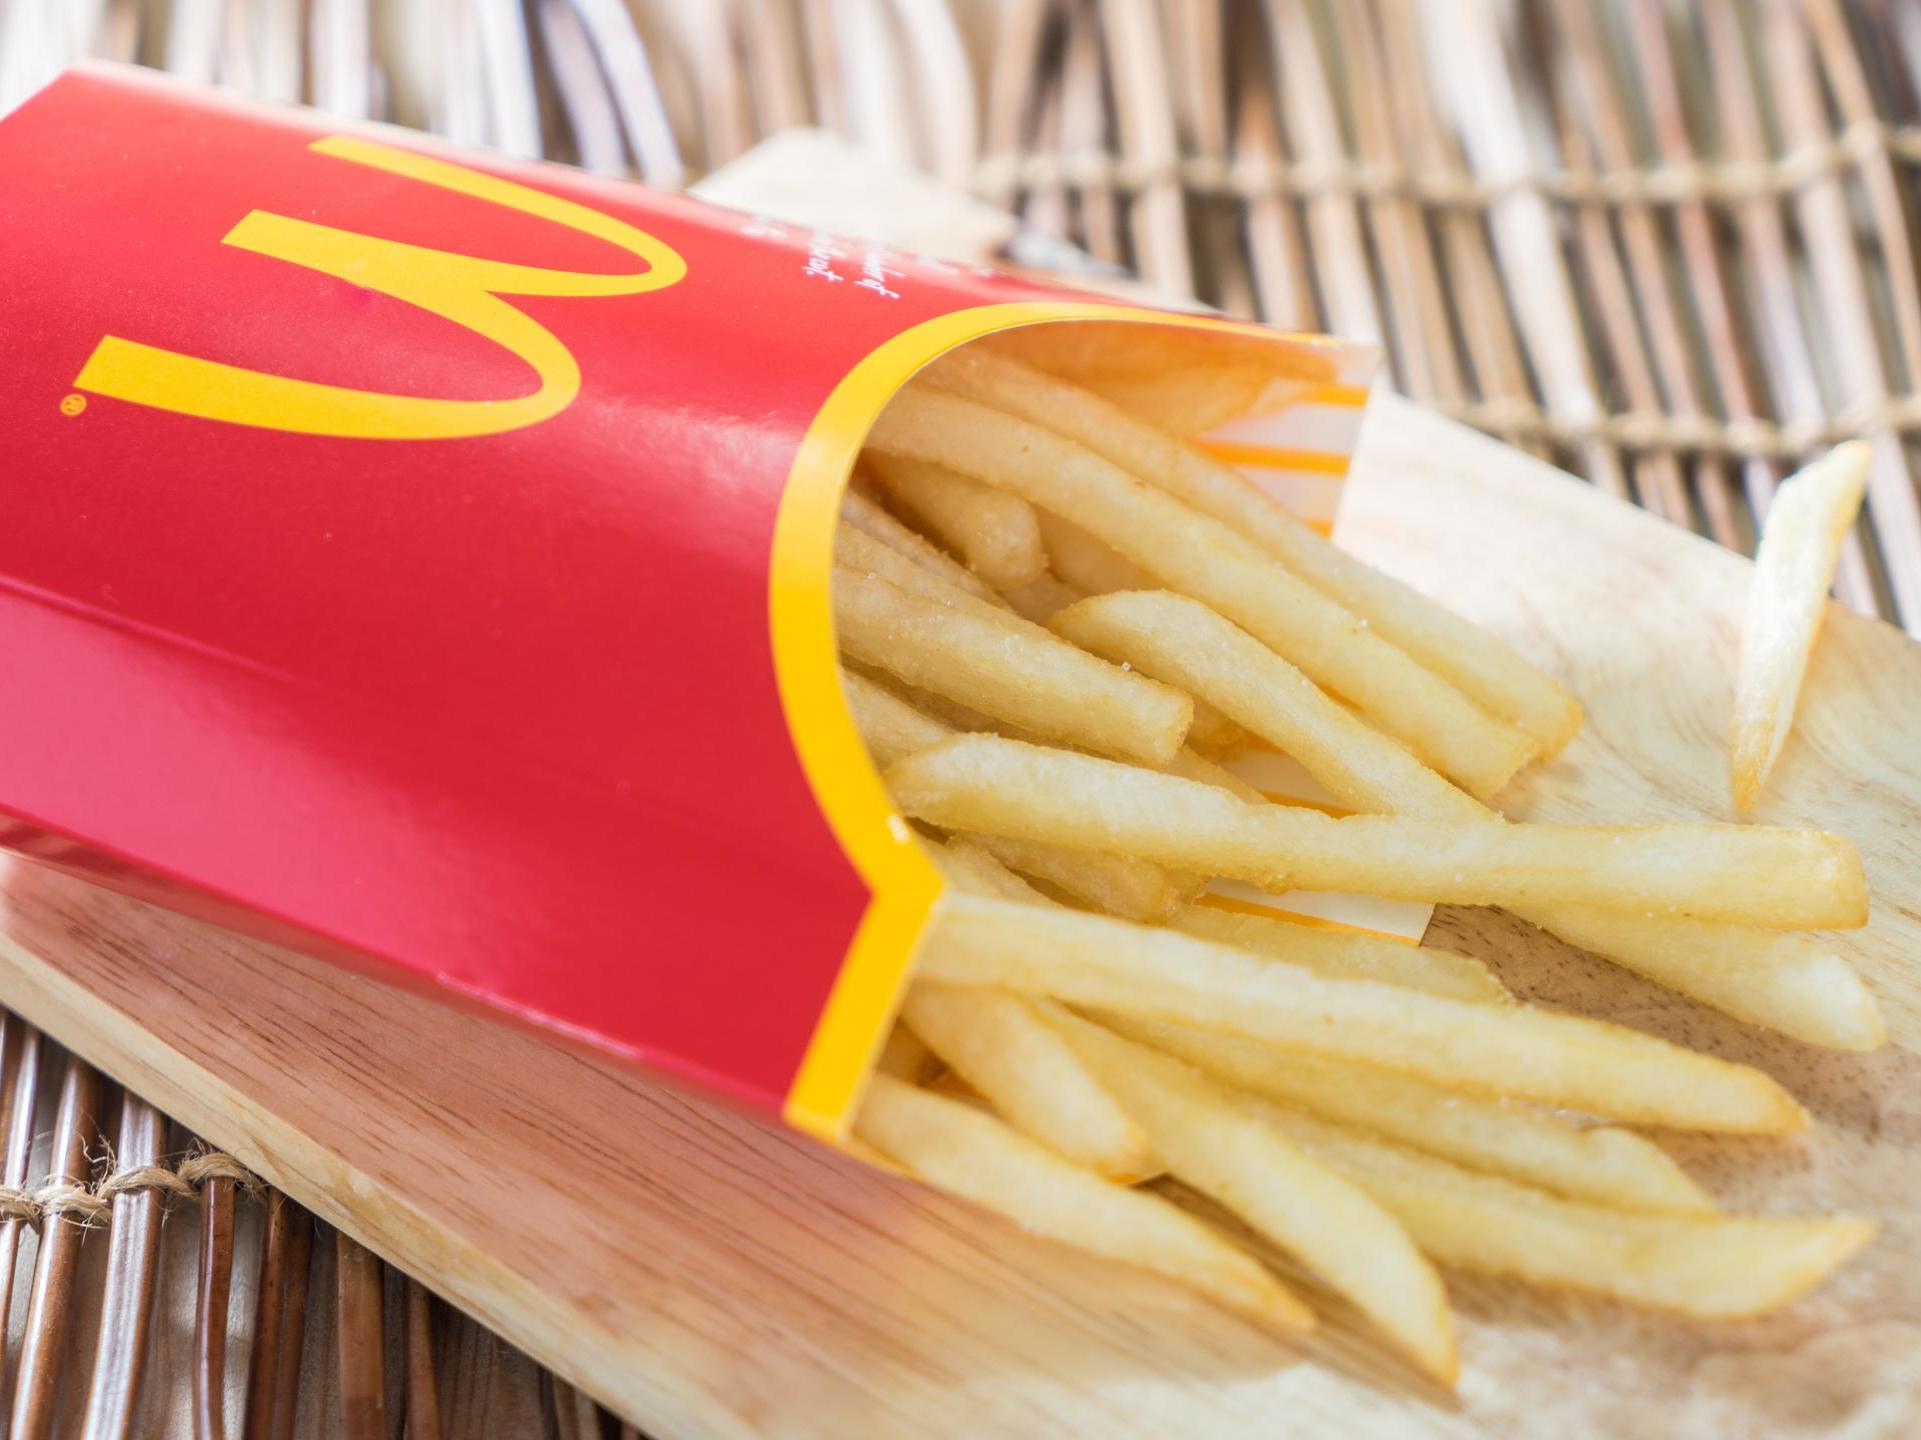 McDonald's 'crashes' UberEats after reopening restaurants for delivery